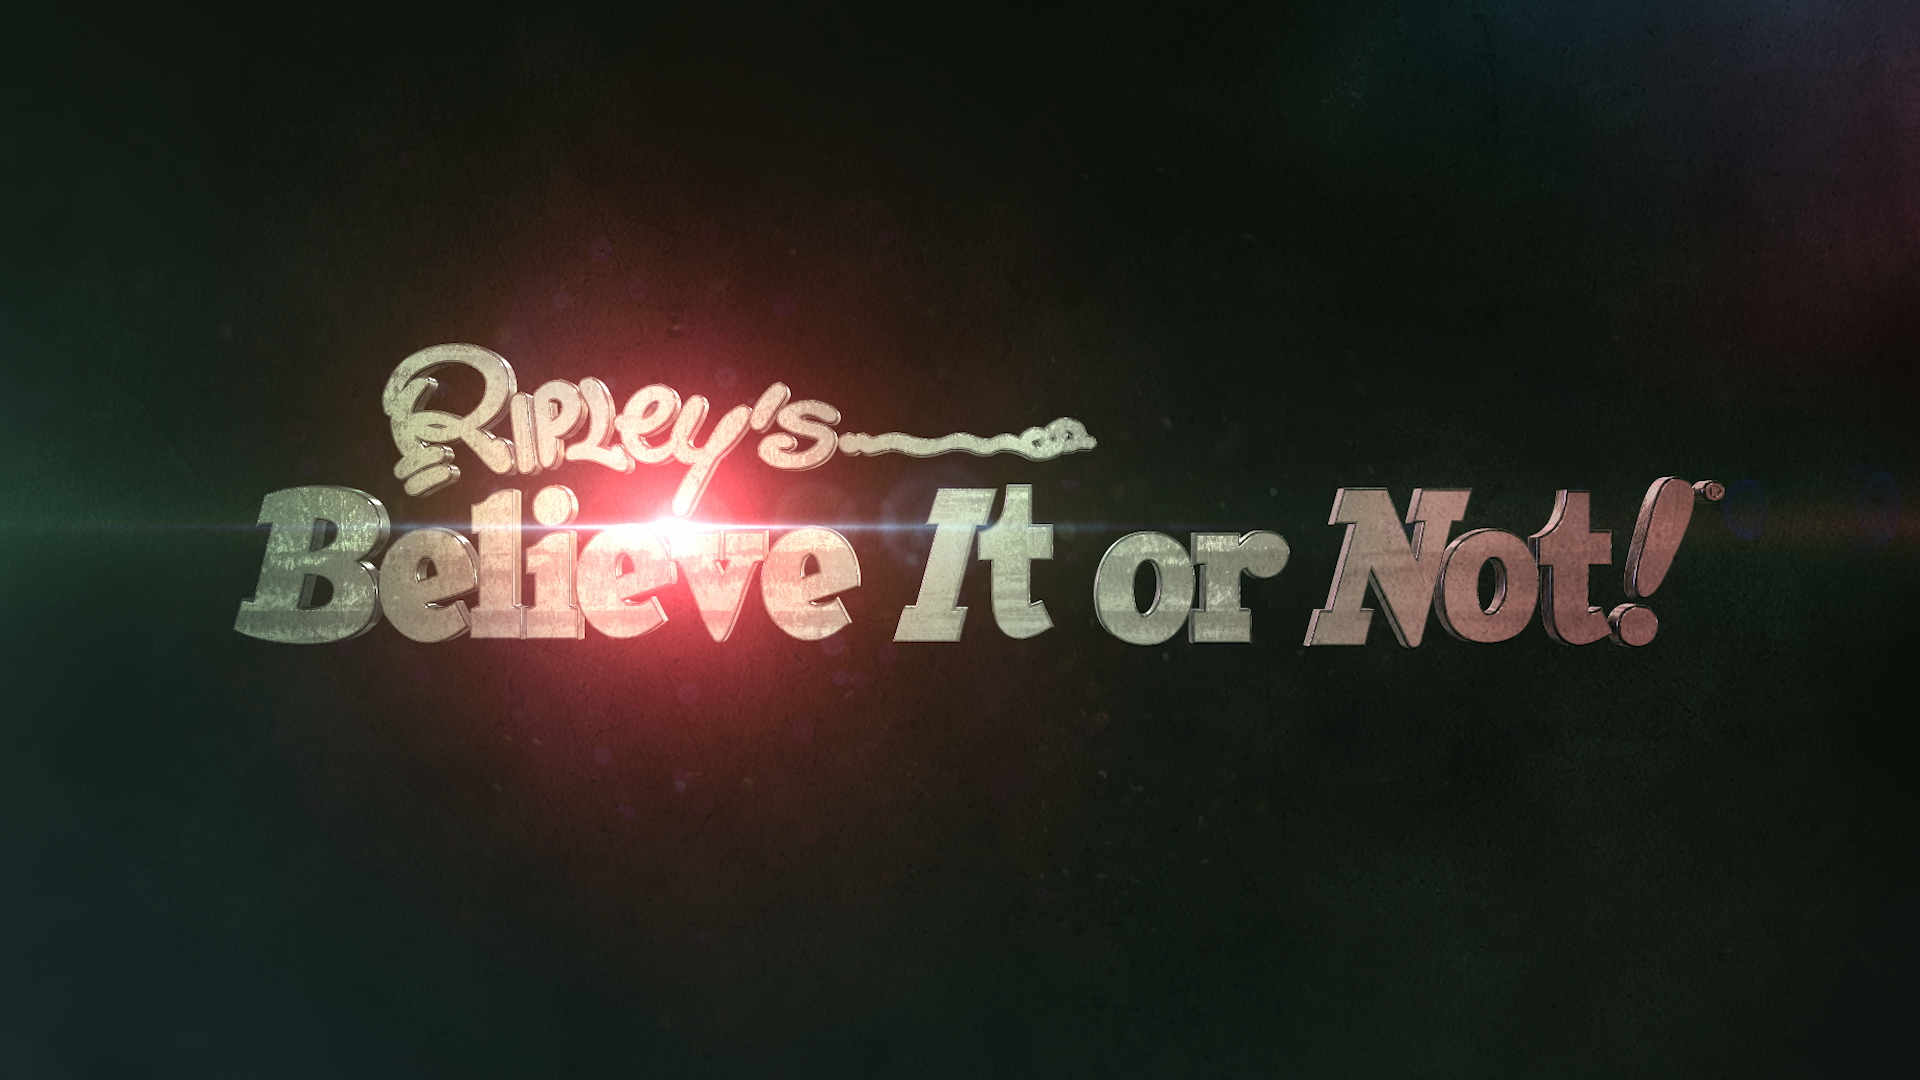 ripley's believe it or not show title logo